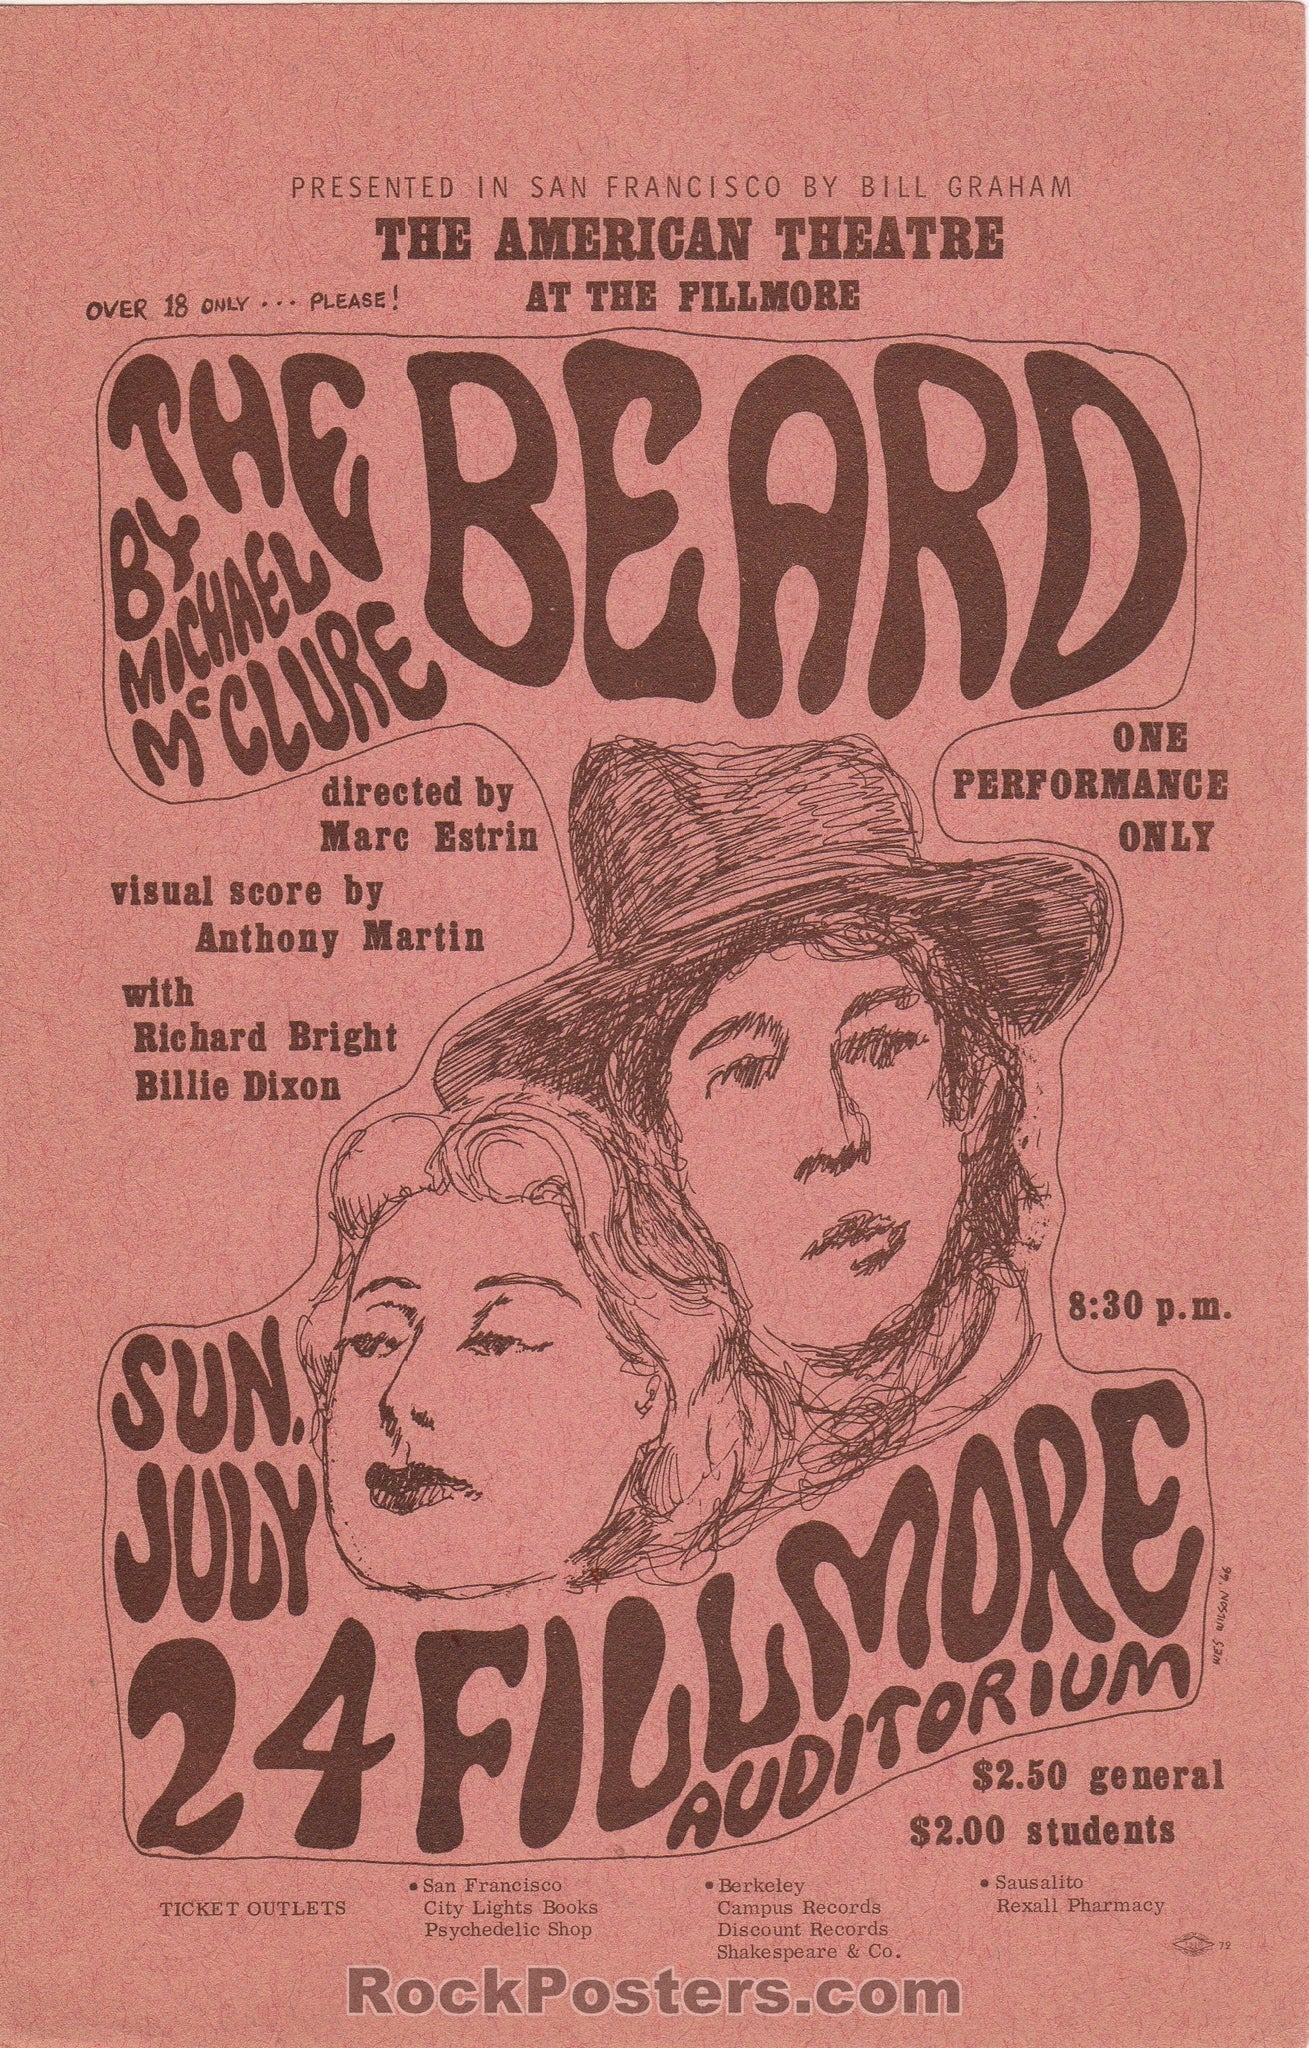 AUCTION - BG 19 -  The Beard Wes Wilson Handbill Brown Ink/Paper Version - Fillmore Auditorium - Condition - Near Mint